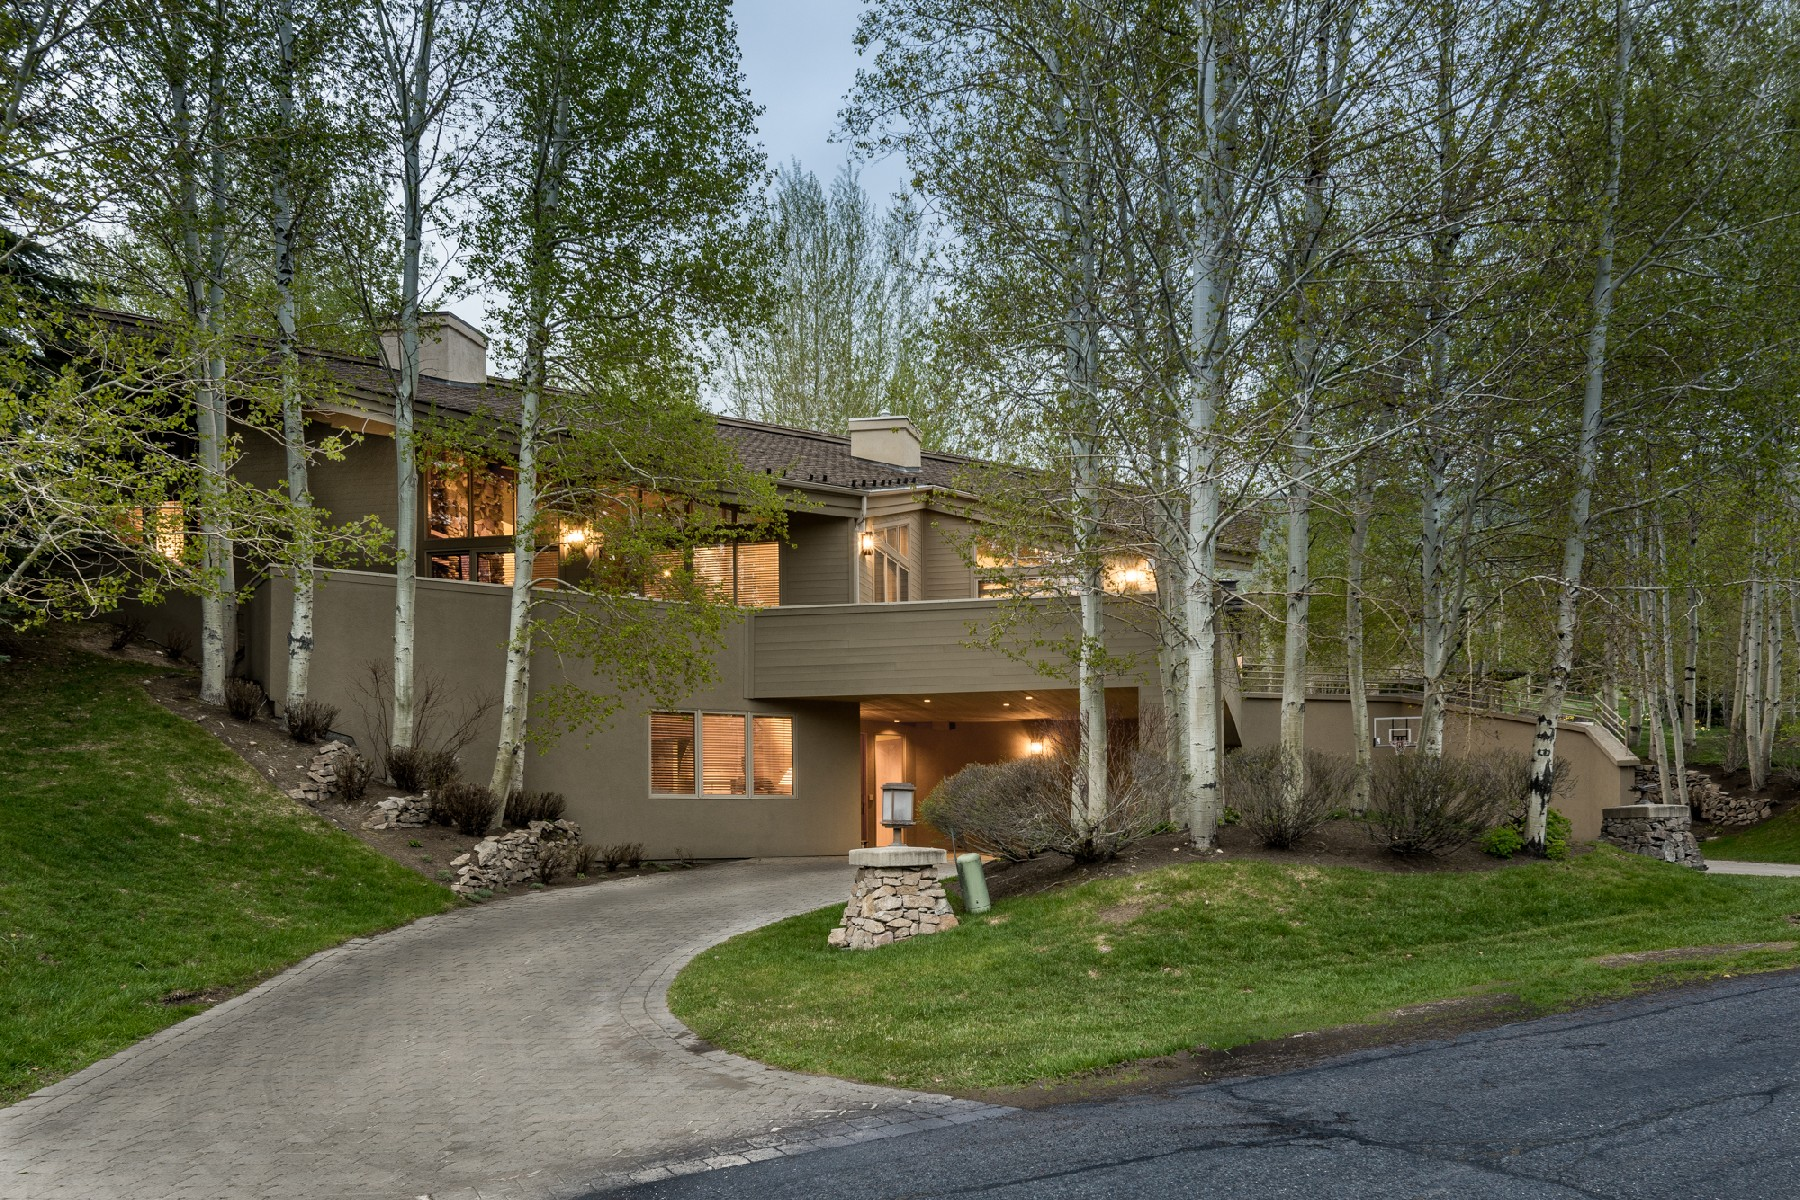 Single Family Home for Sale at Top Of The World 112 Skyline Dr Sun Valley, Idaho, 83353 United States